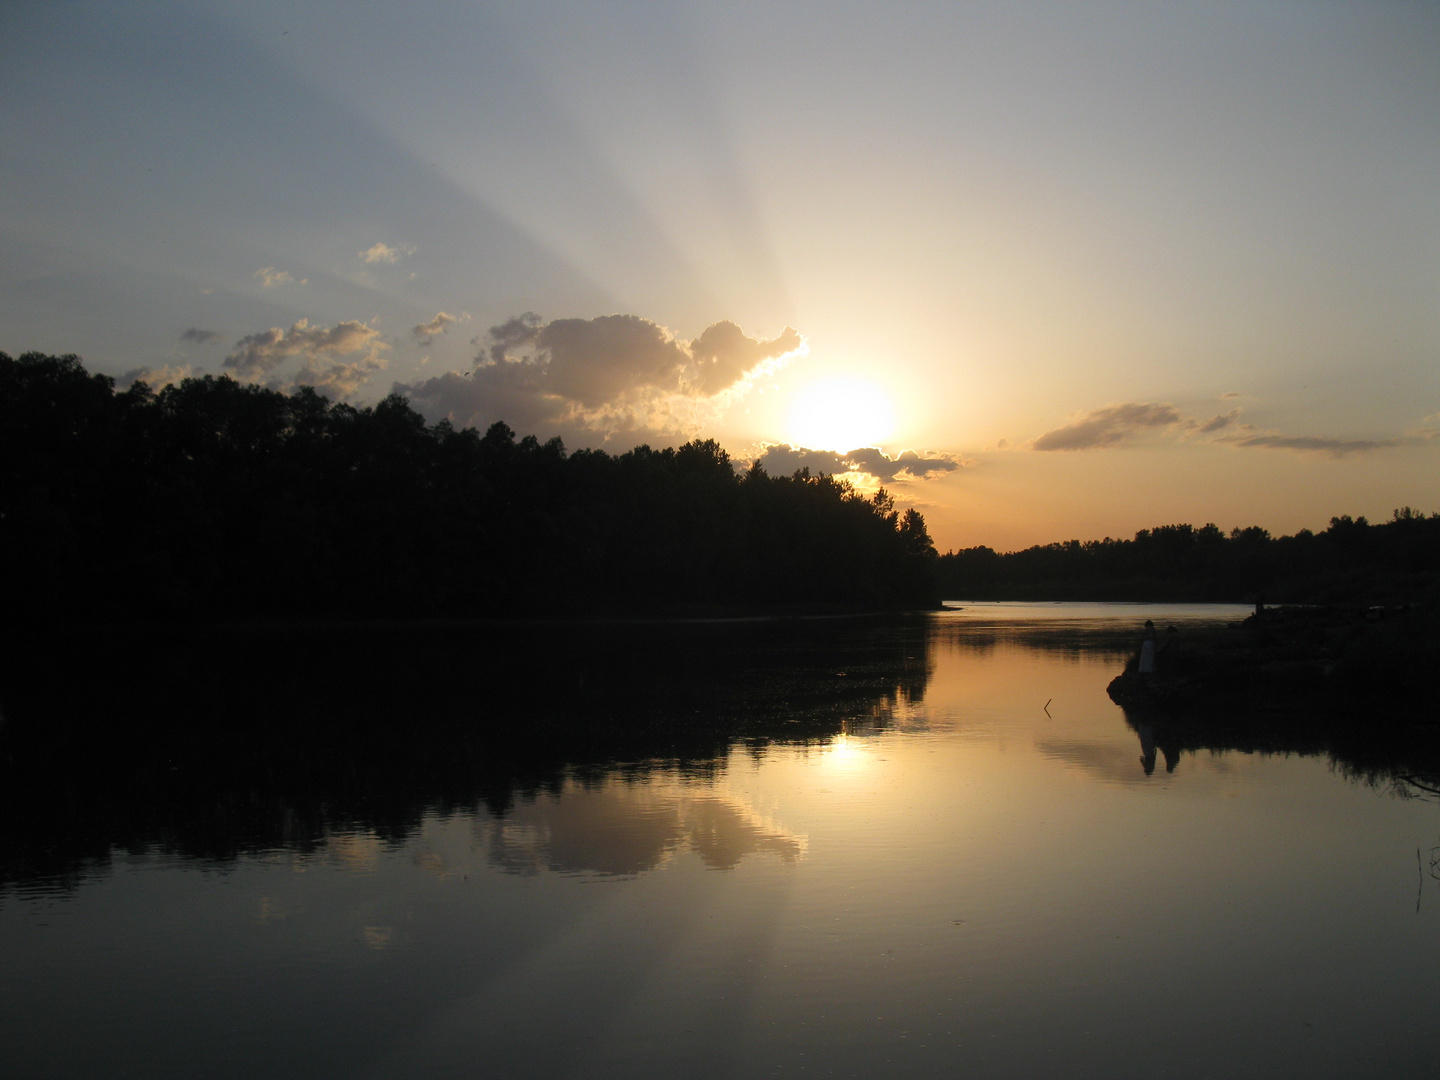 at sunset on the river